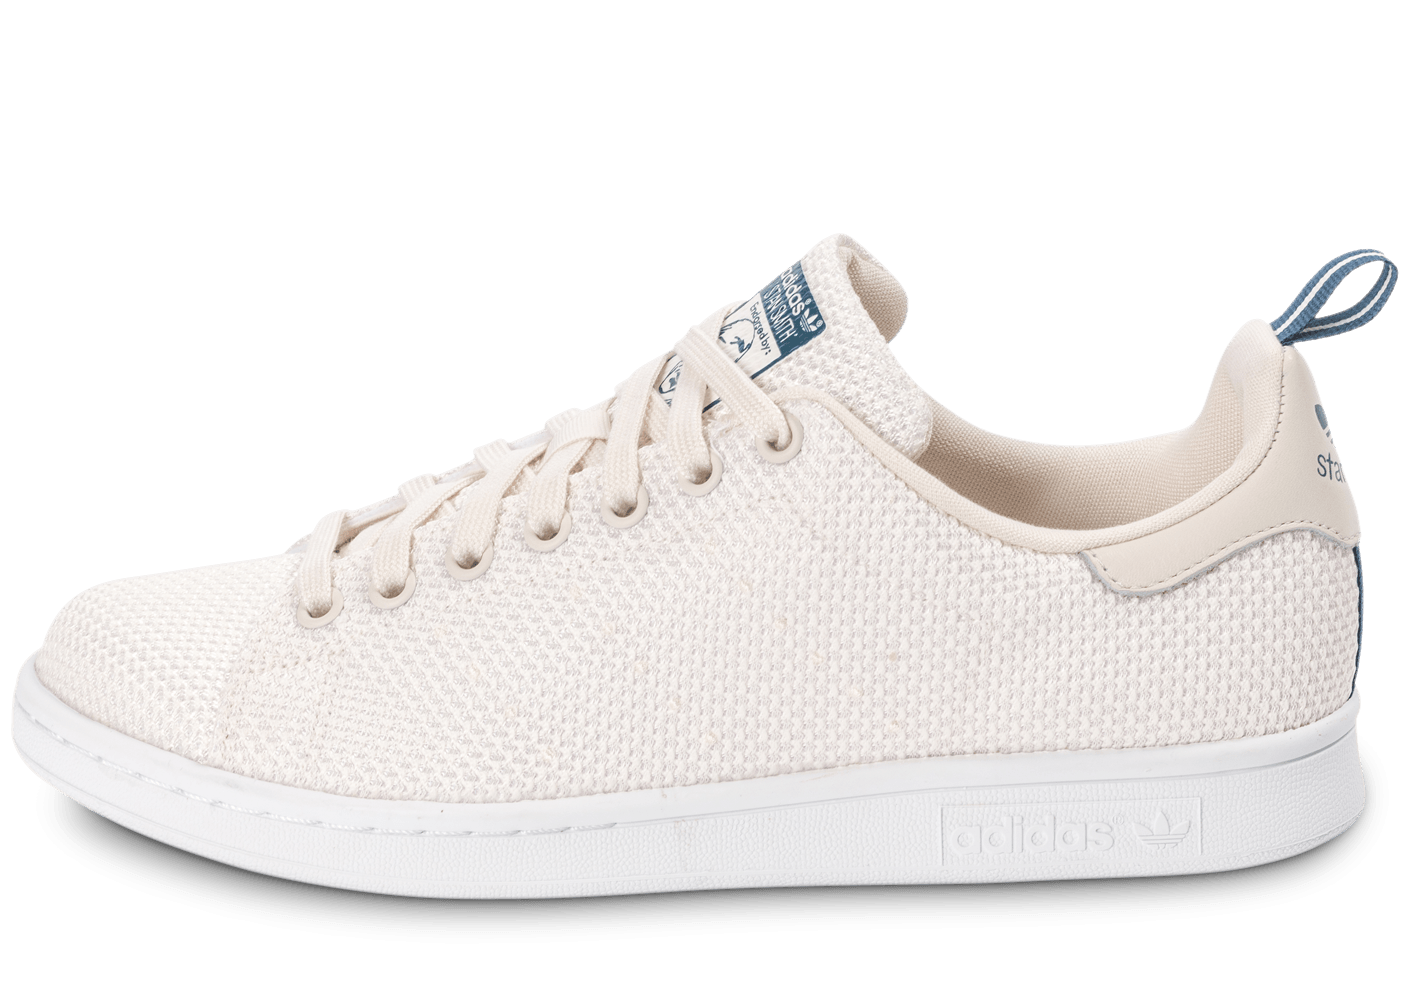 adidas stan smith ck blanche chaussures baskets homme chausport. Black Bedroom Furniture Sets. Home Design Ideas